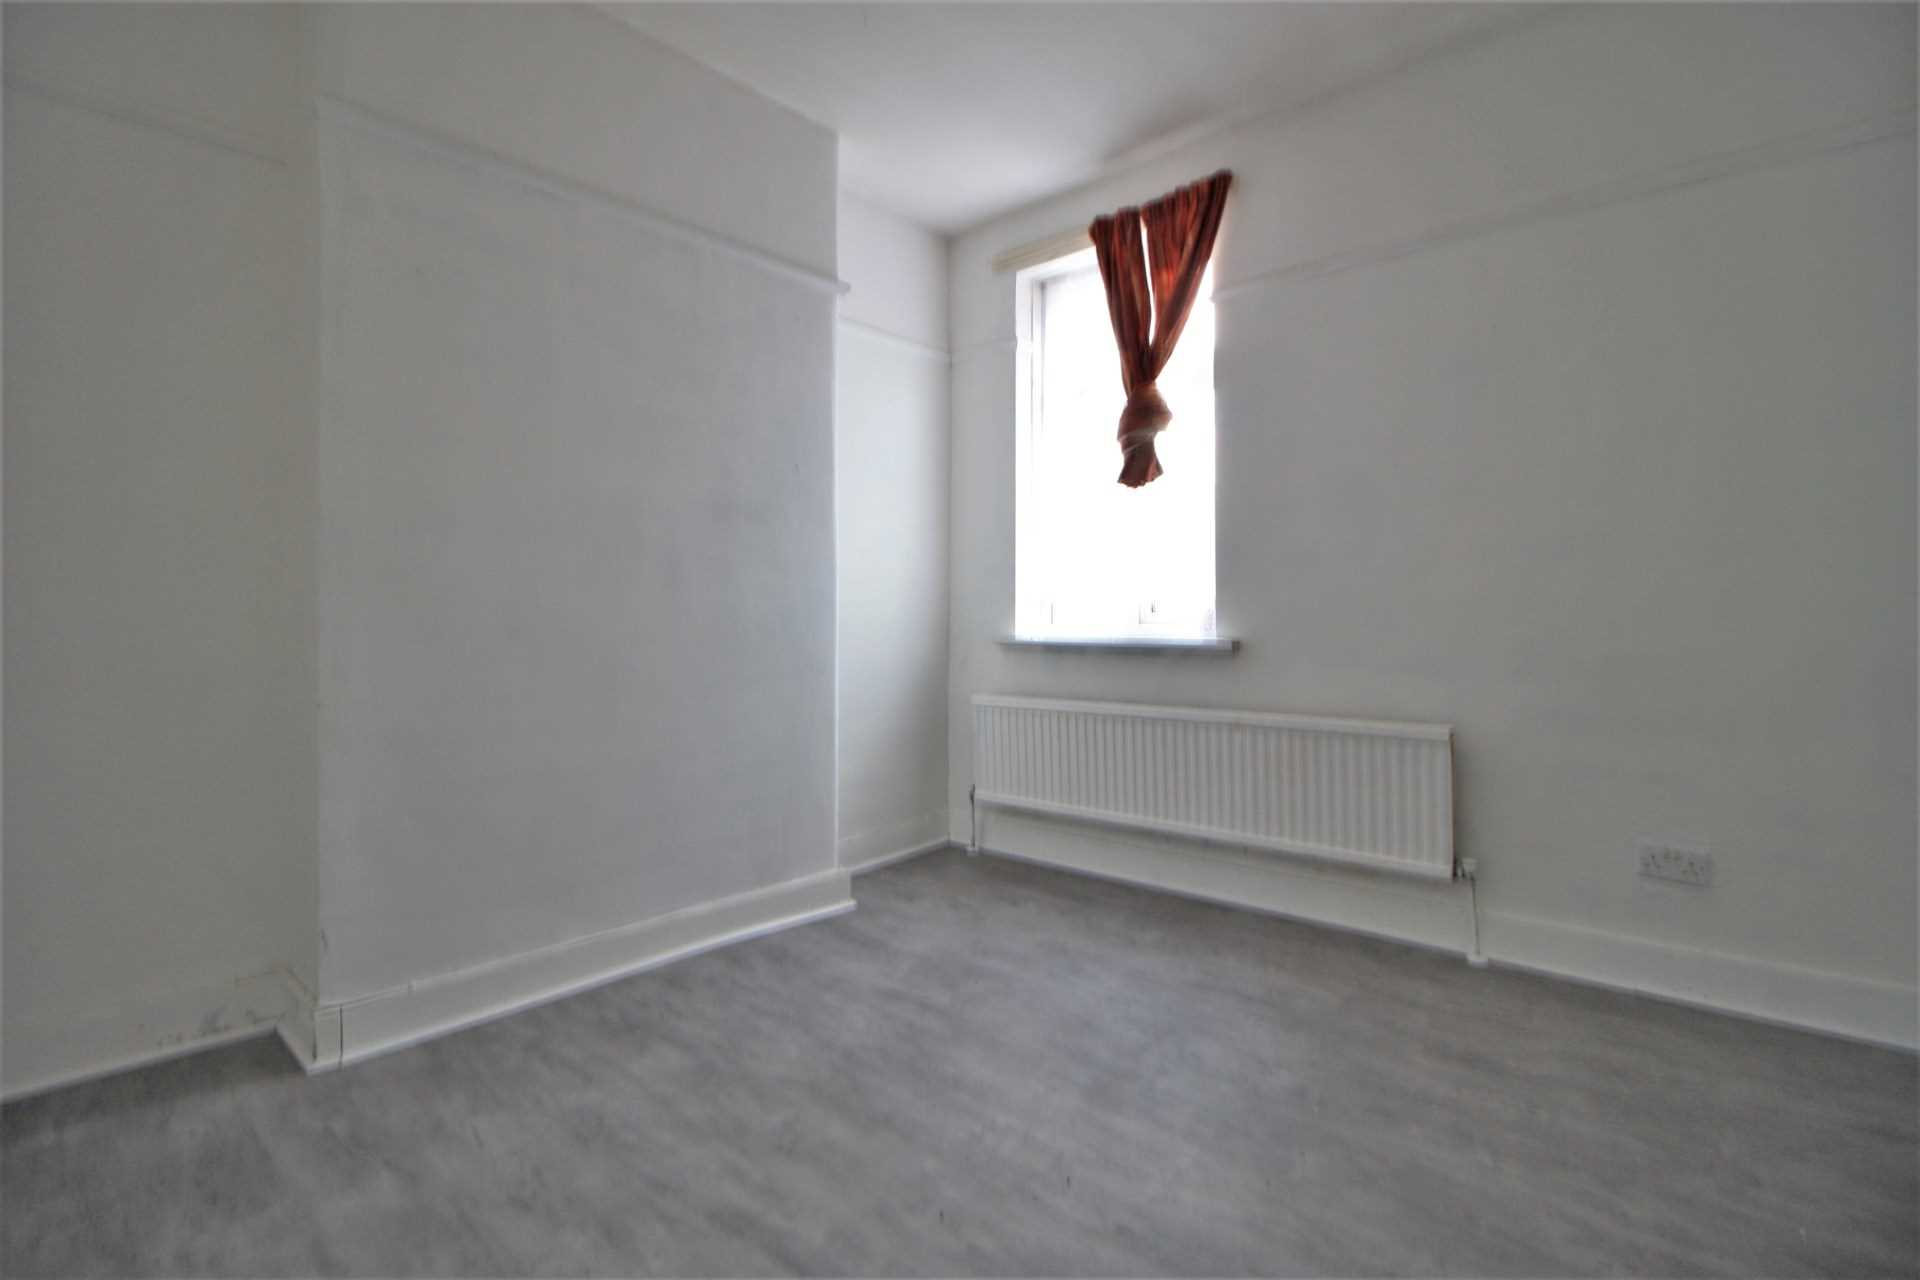 Halley Road, Forest Gate, Image 8